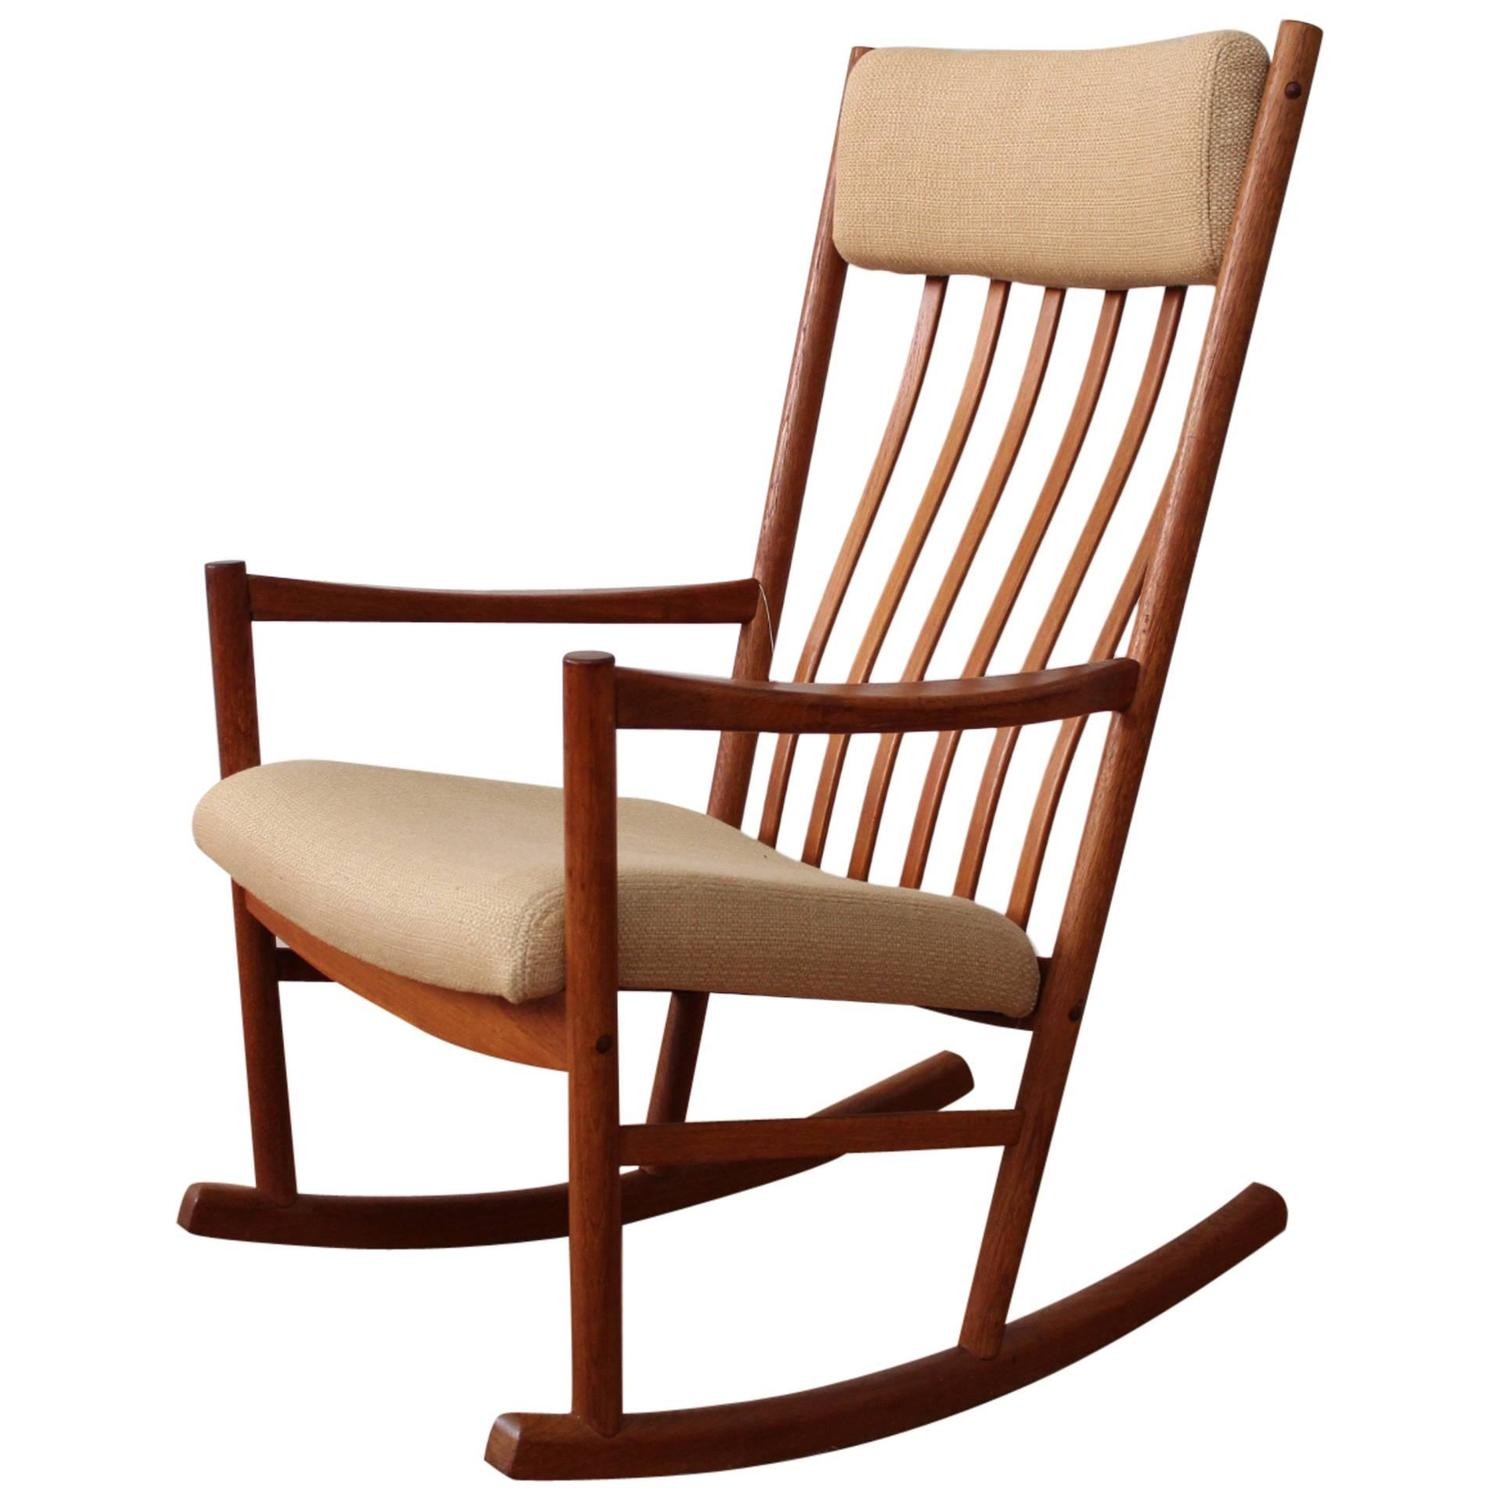 danish teak rocking chair. Black Bedroom Furniture Sets. Home Design Ideas